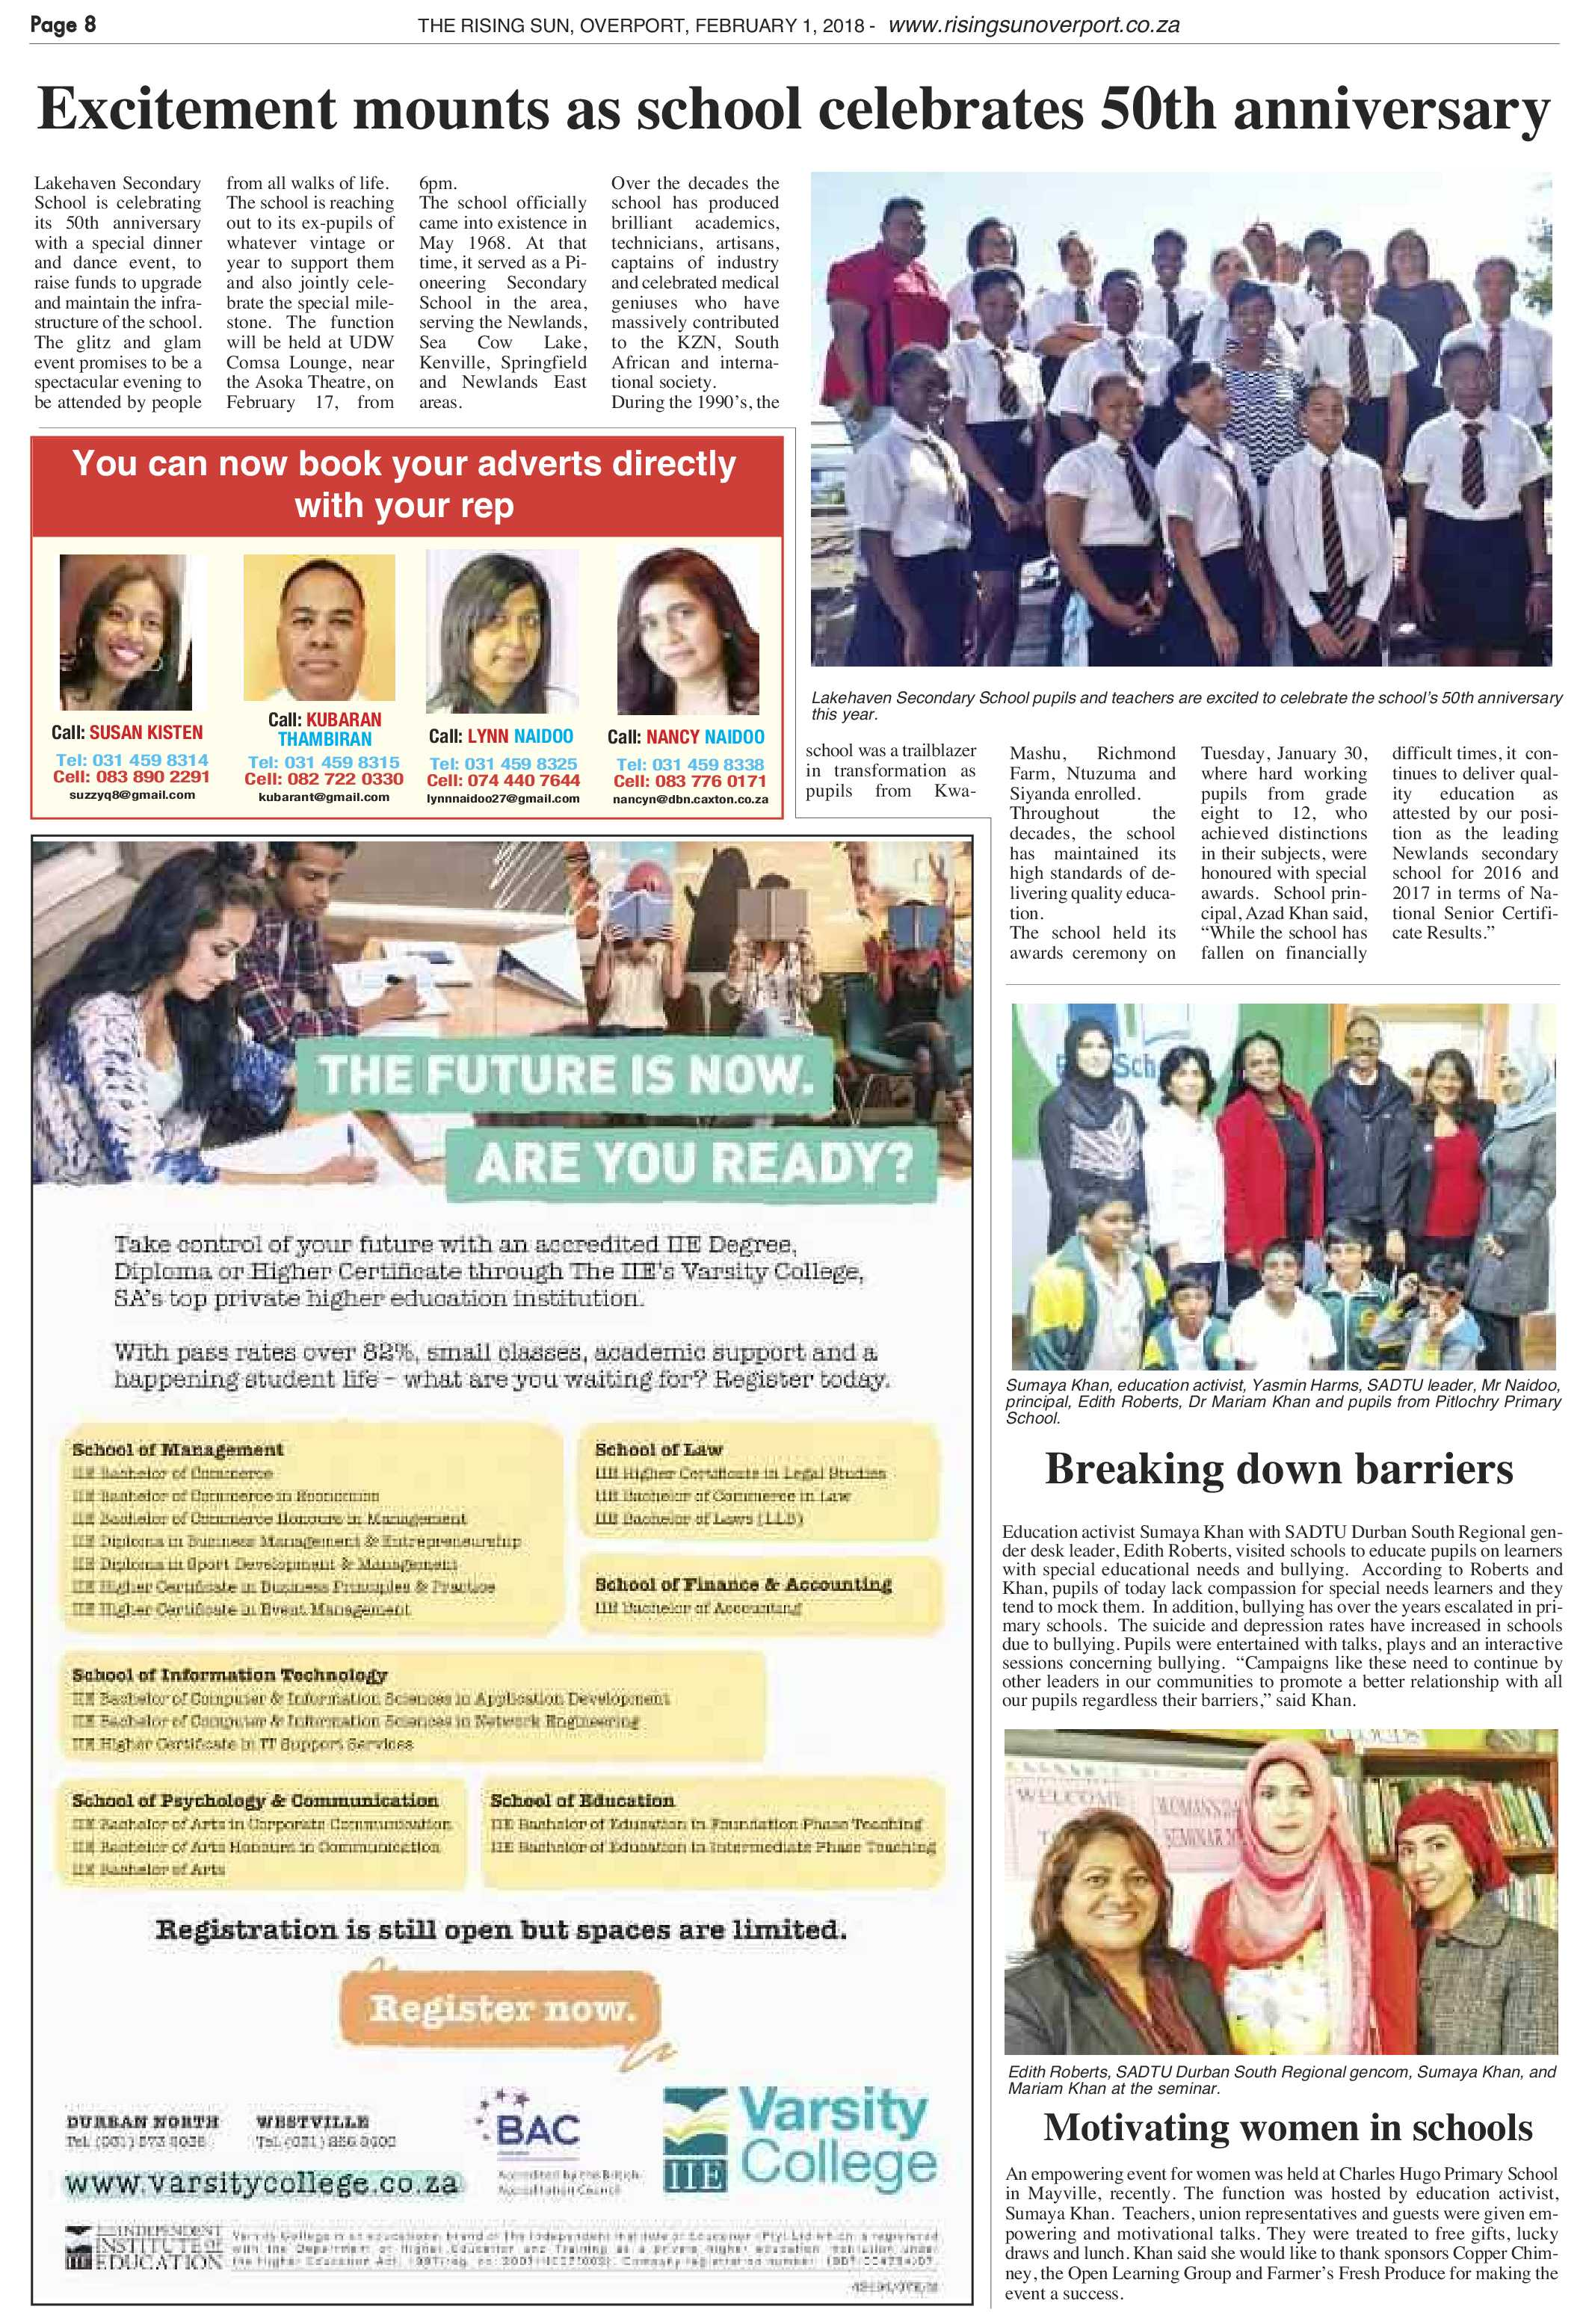 rising-sun-overport-february-1-epapers-page-8